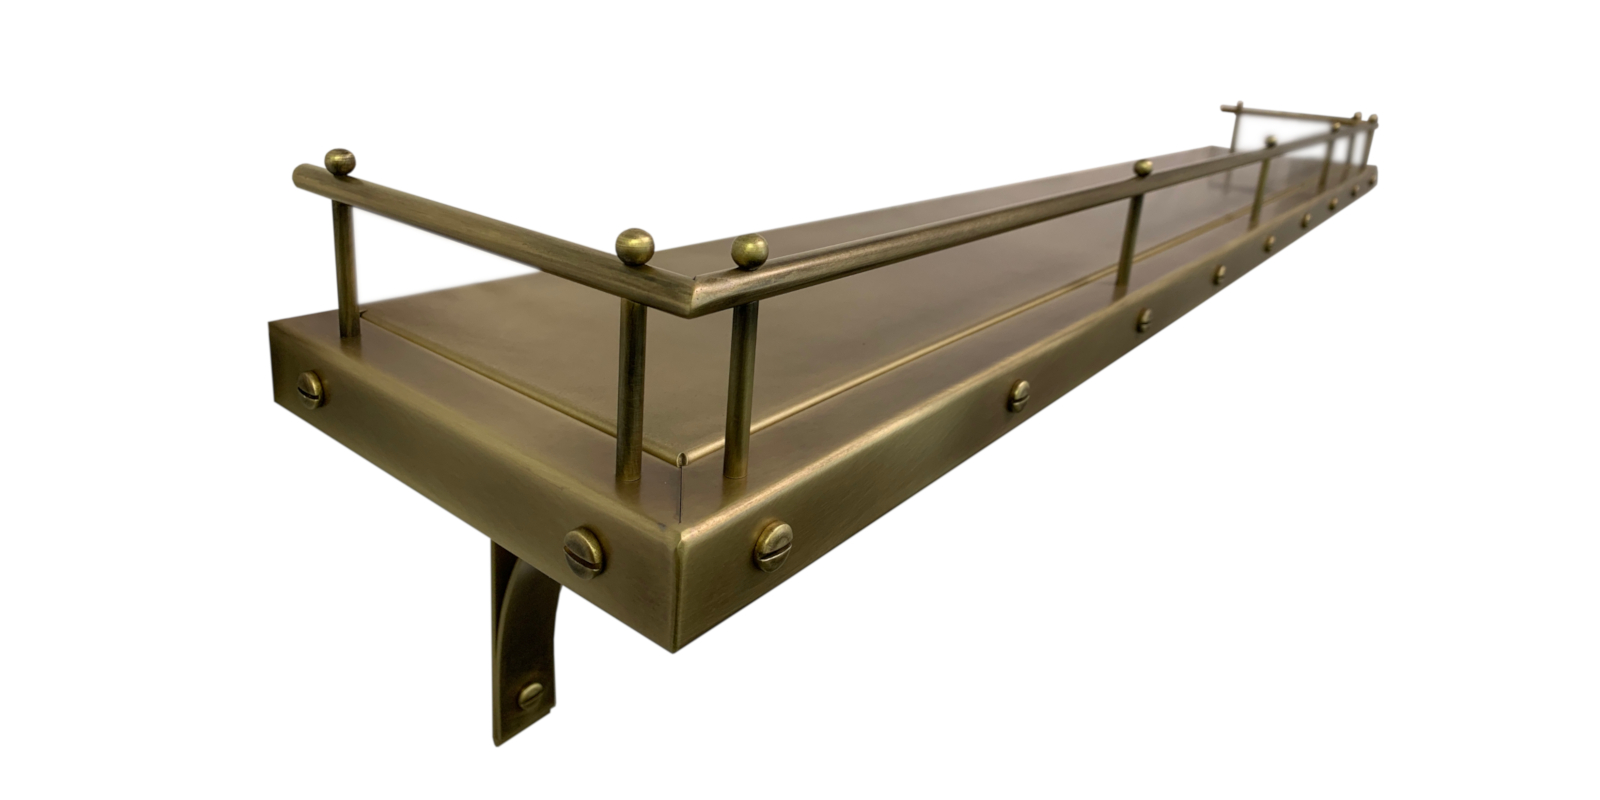 Antique brass floating shelf with custom pot rail, buttons and bracing.